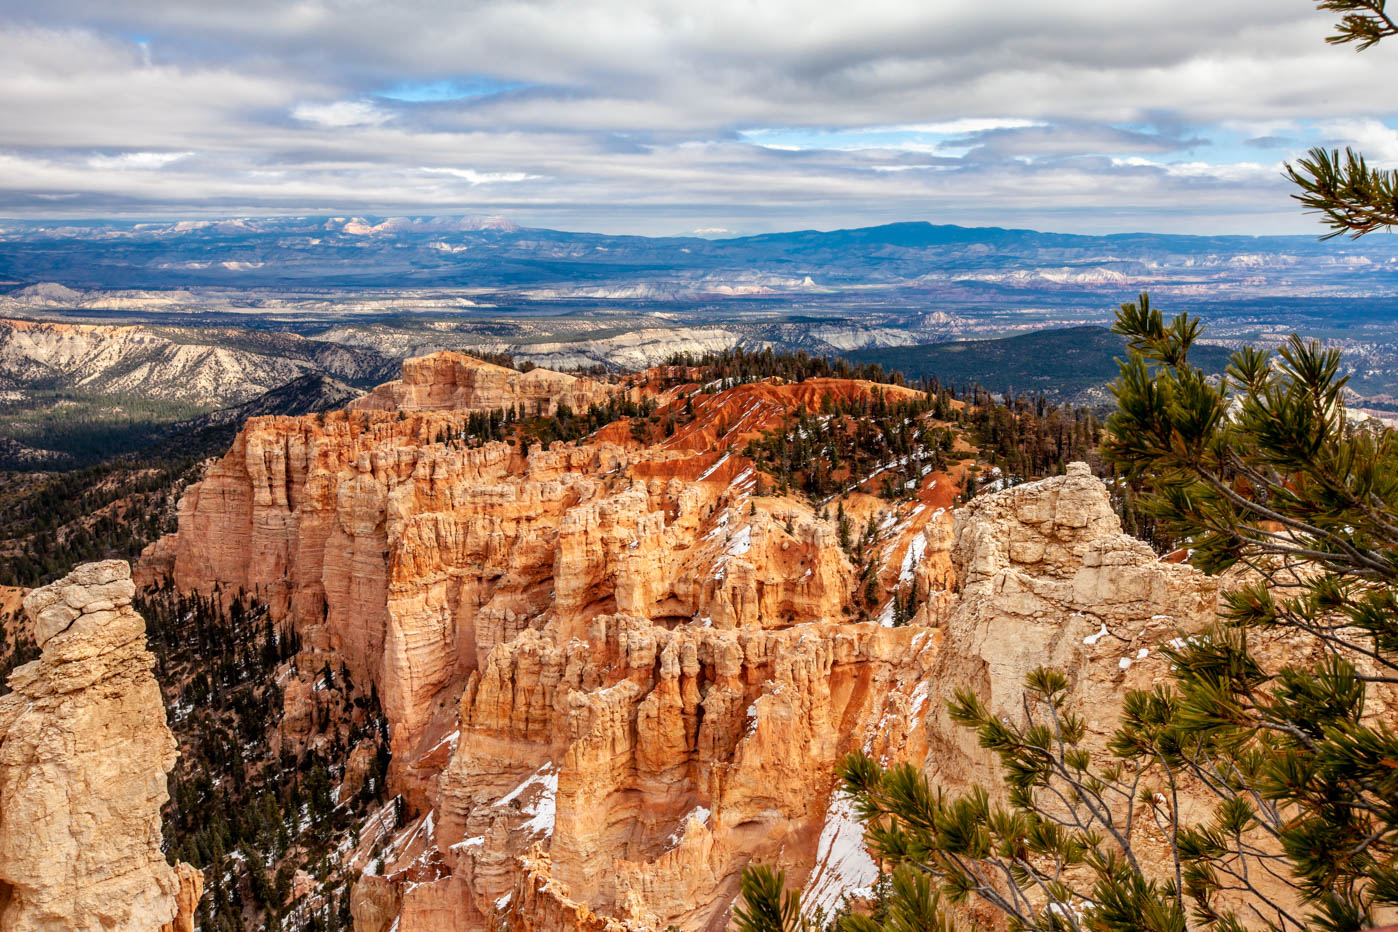 18-Mile Scenic Drive Rainbow Point Overlook at Bryce Canyon National Park Best Photo Spots #vezzaniphotography